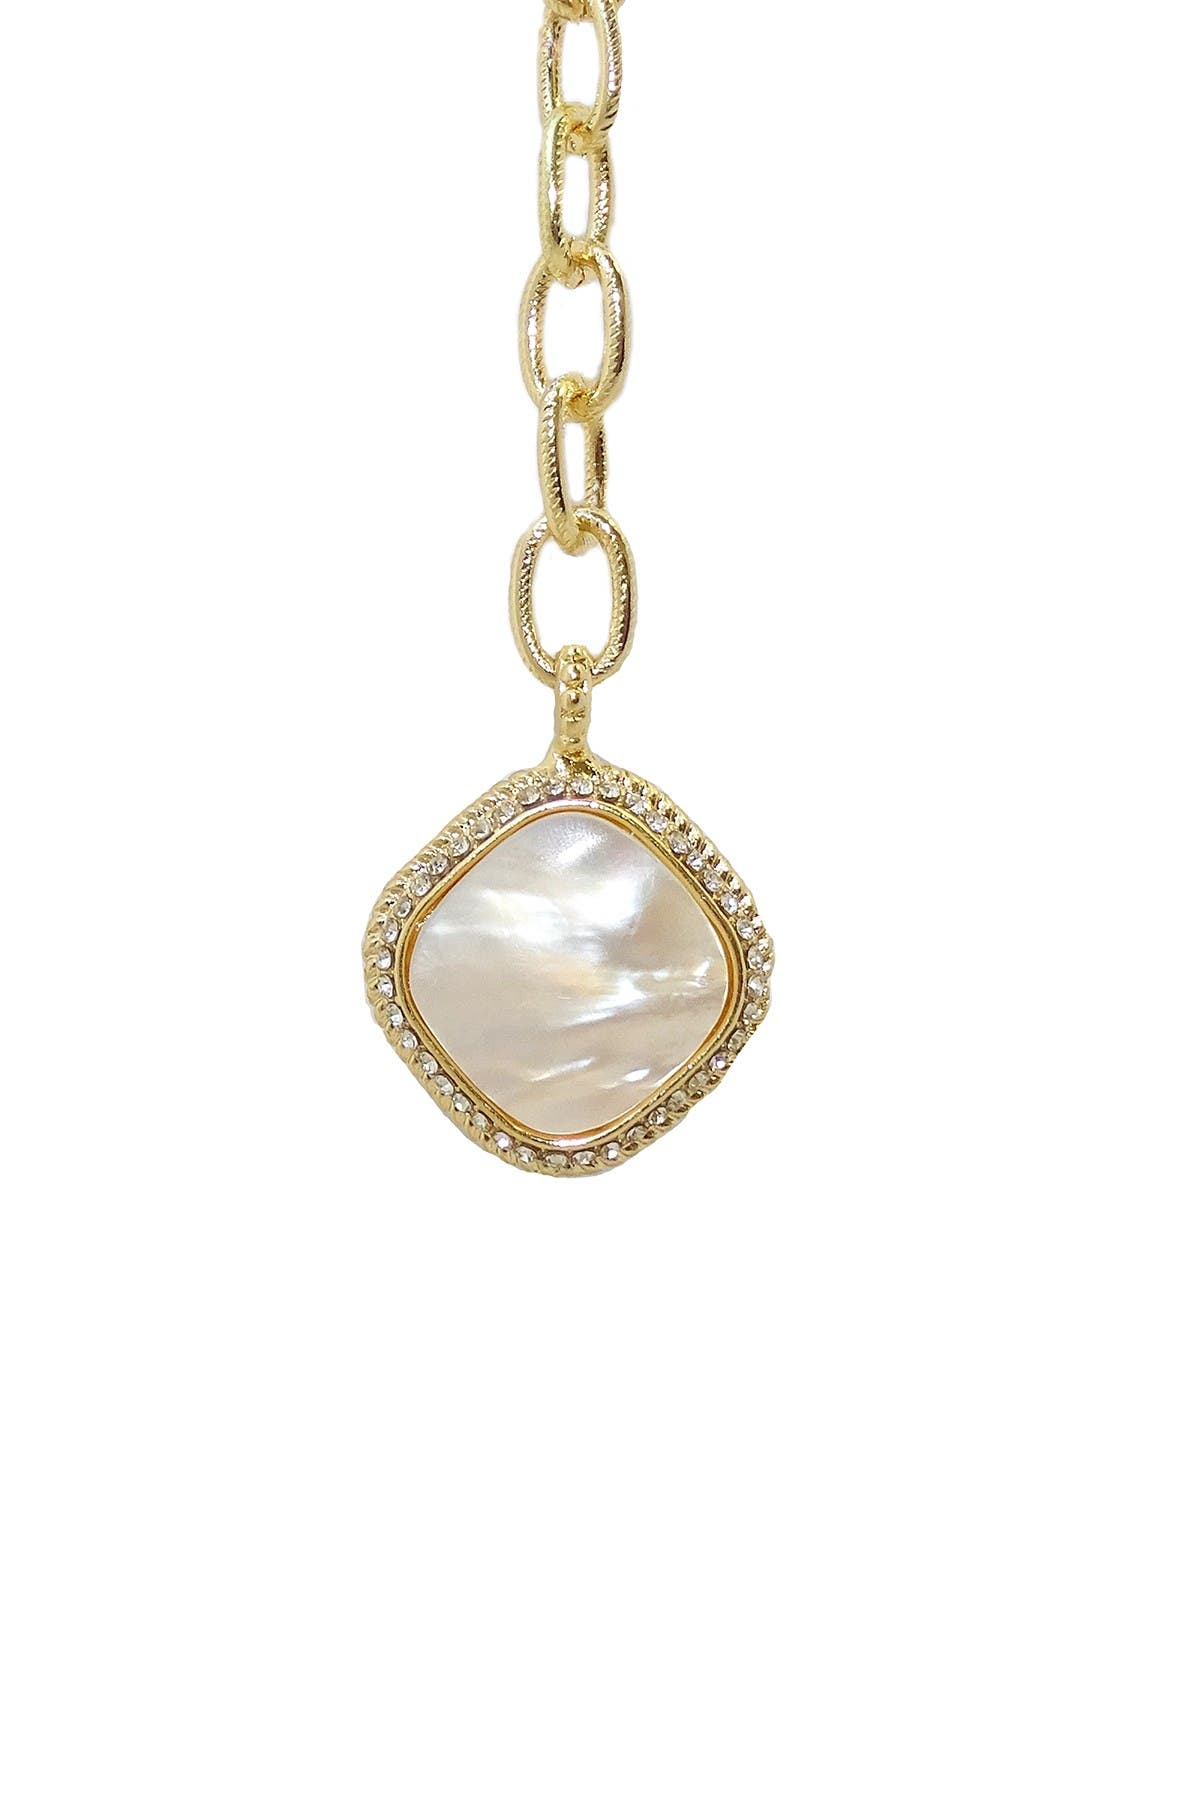 Image of Savvy Cie 18K Yellow Gold Plated Bezel Set Mother of Pearl Pendant Chain Link Necklace